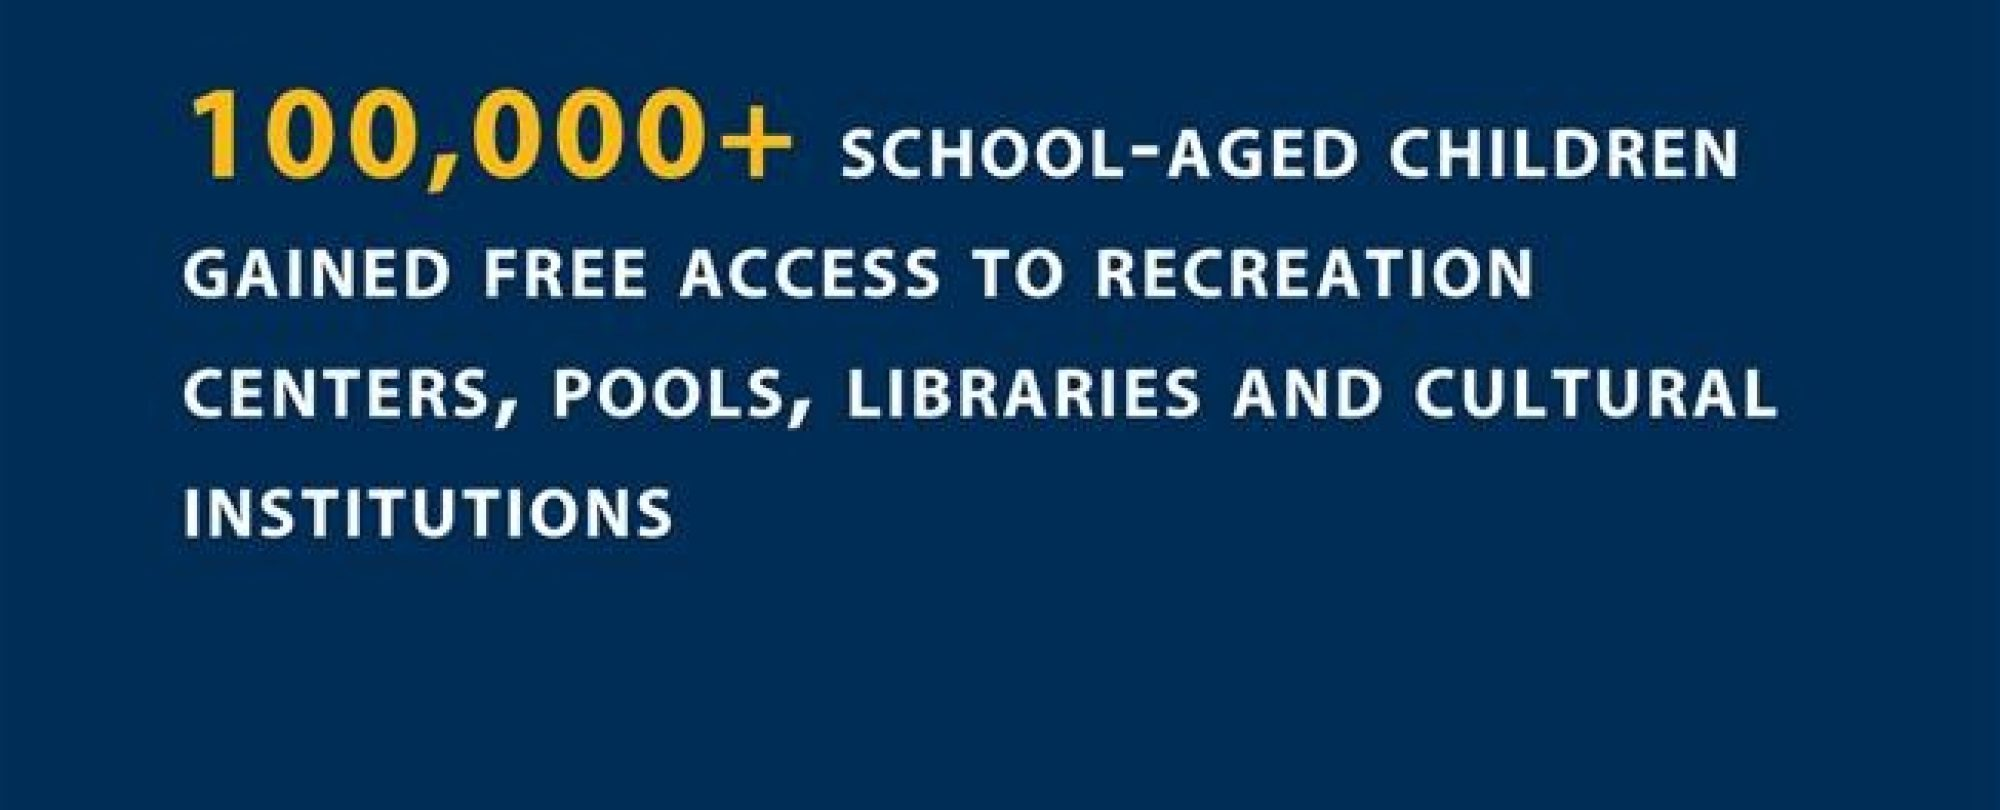 100,000+ school-aged children gained free access to recreation centers, pools, libraries, and cultural institutions.